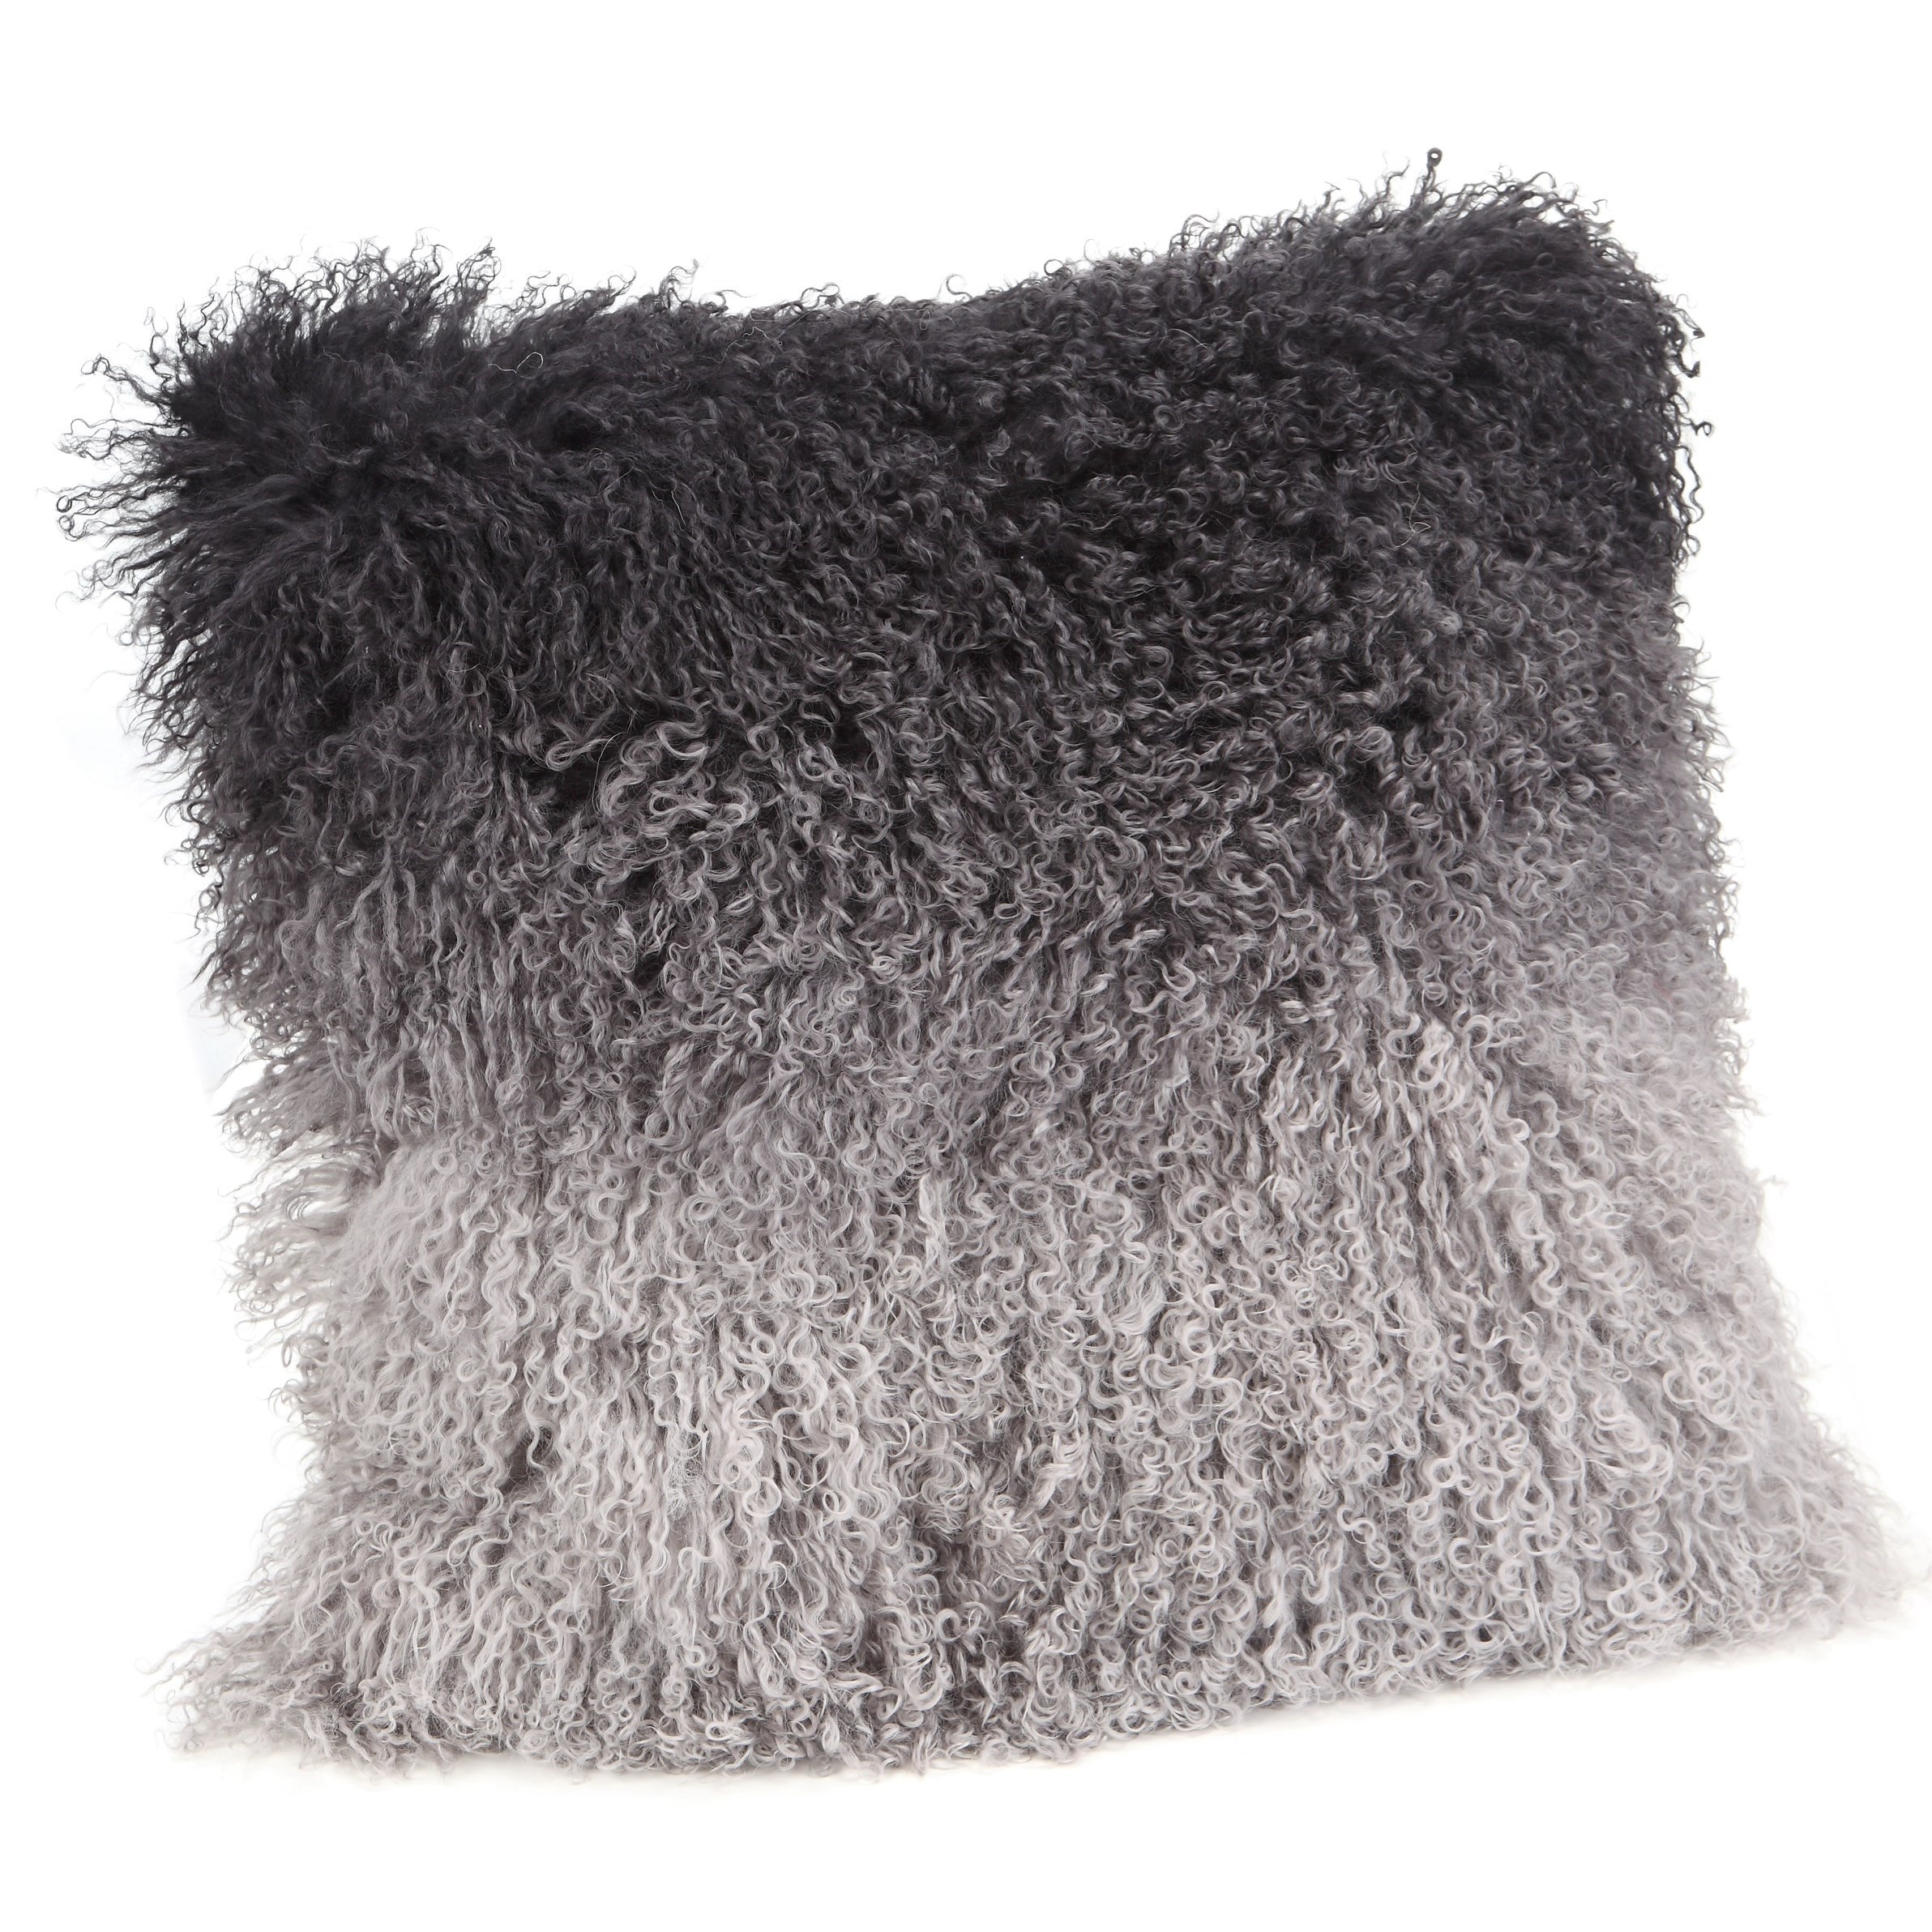 sheepskin throw pillows wool for cover covers fur ideas smooth lamb overstock styles mongolian inspiring lambswool pillow soft faux com